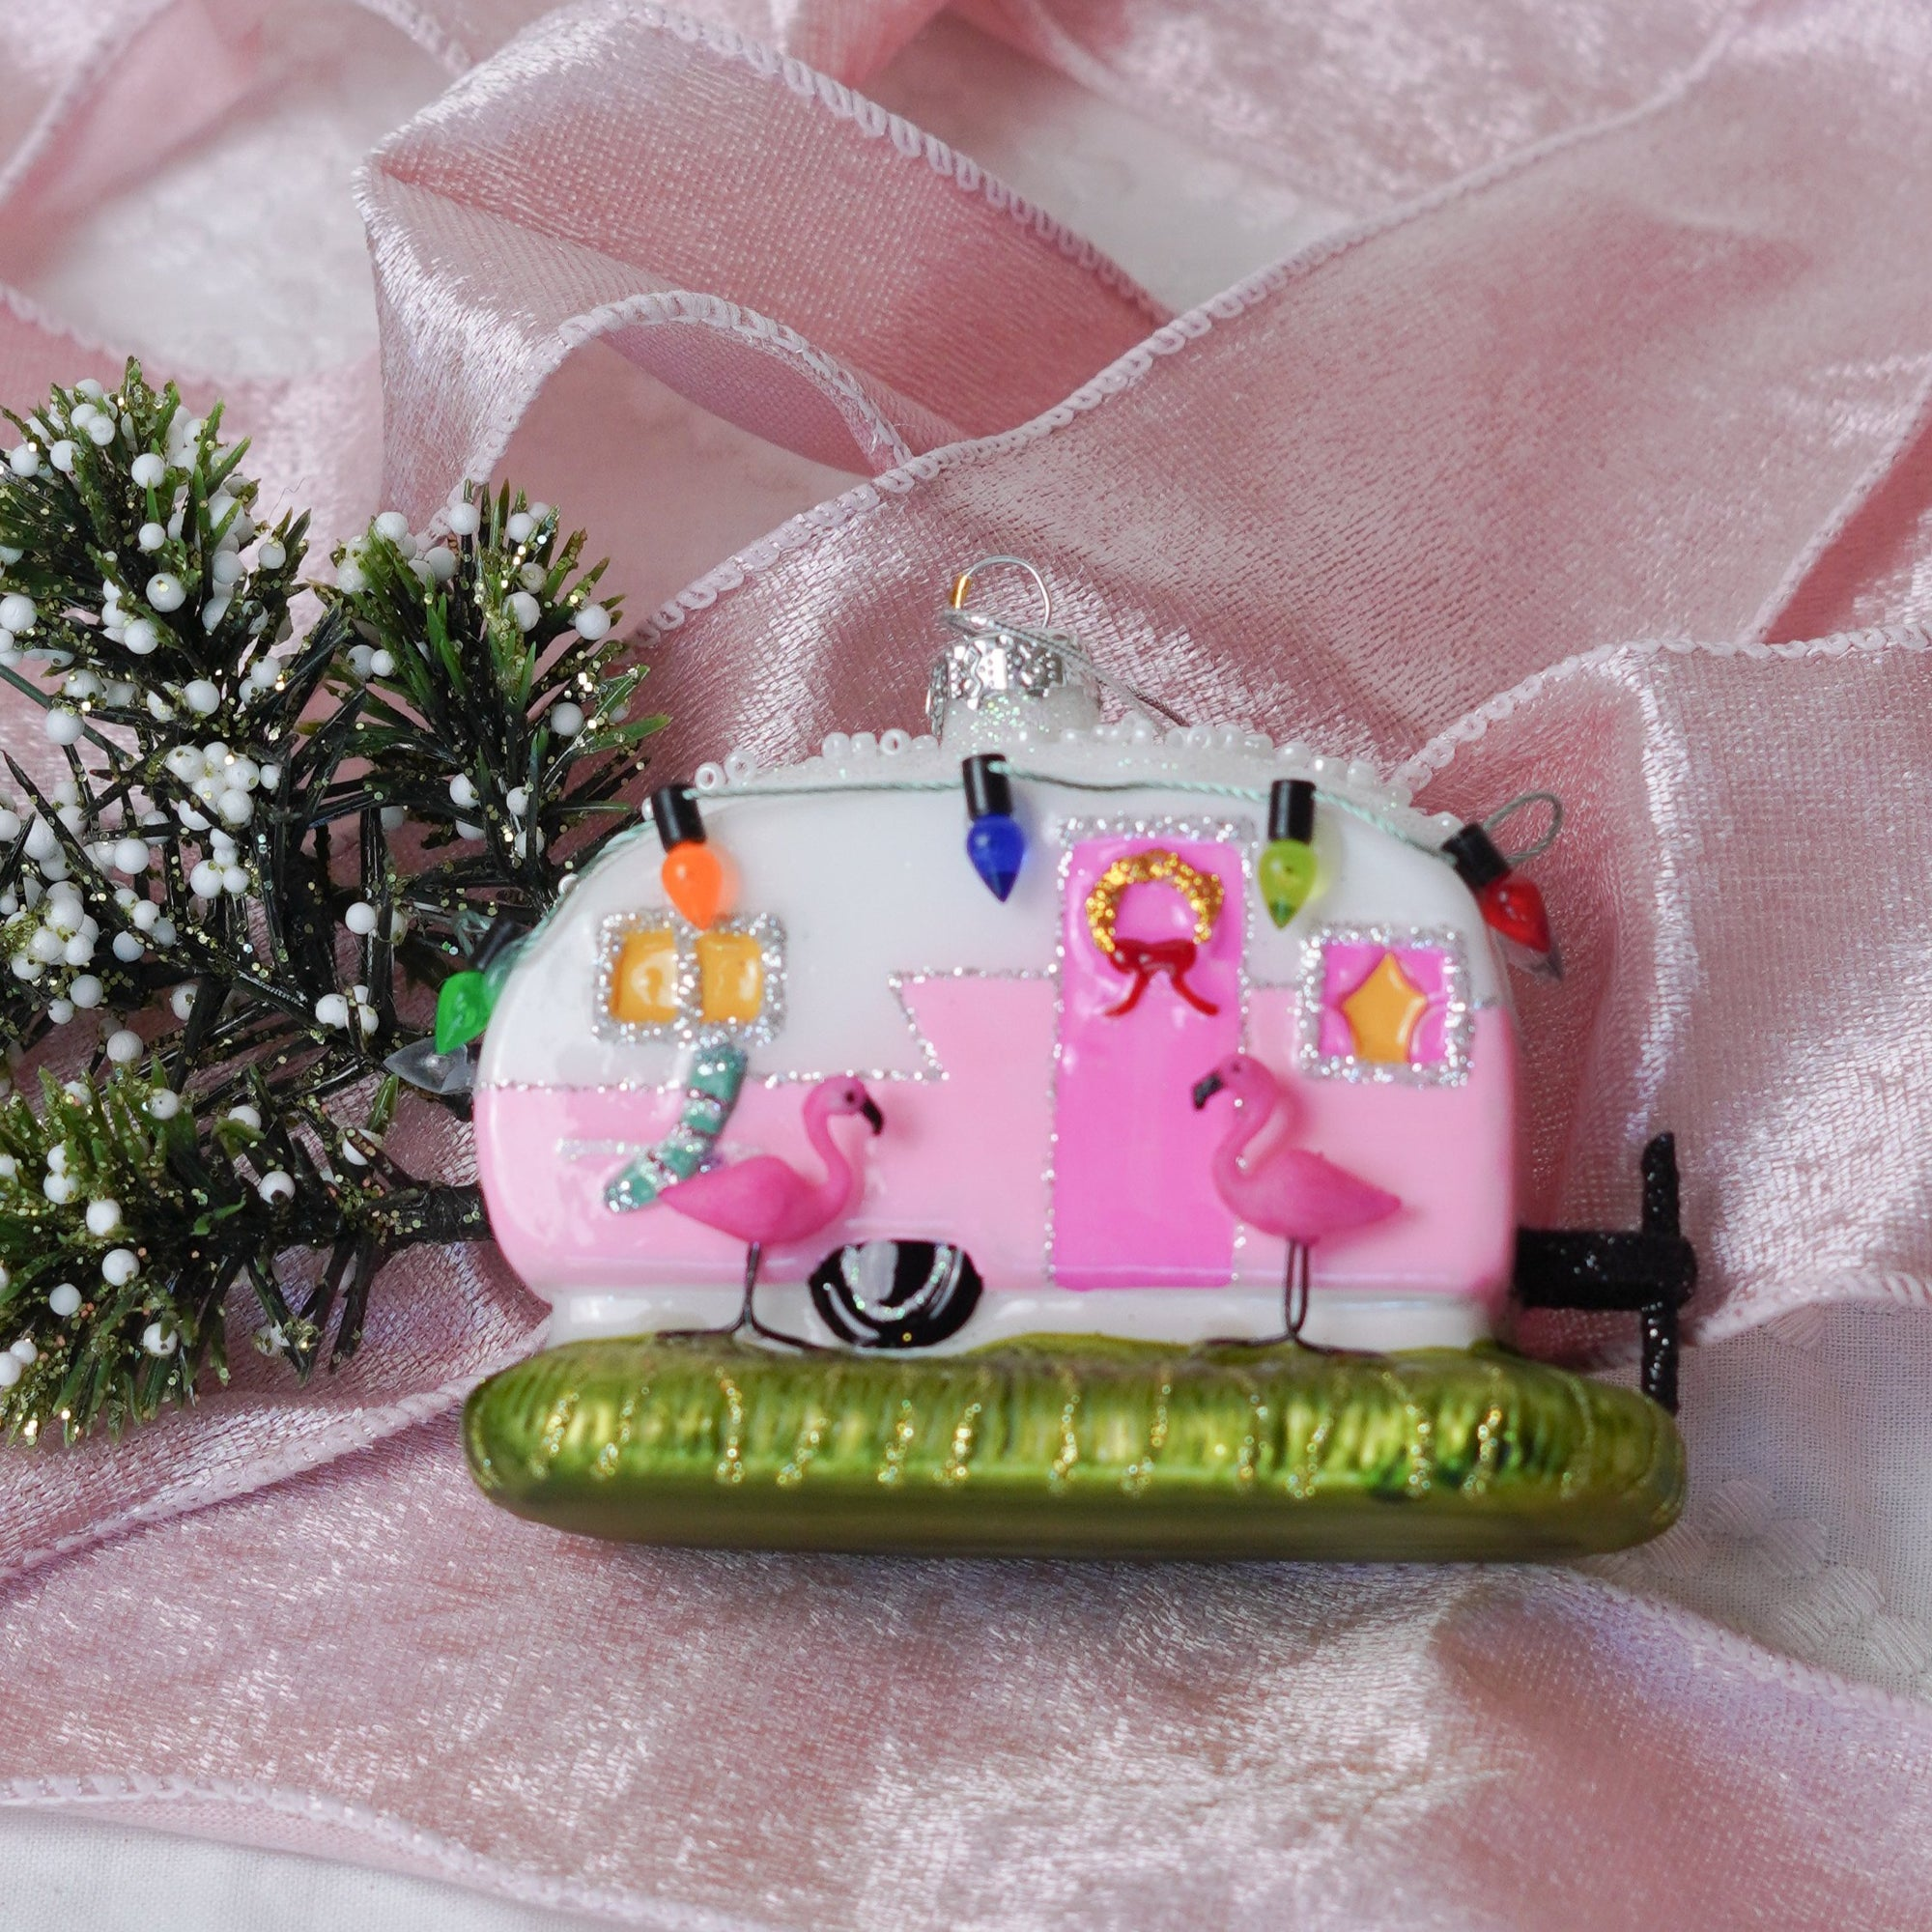 A Flamingo & a Pink Camper - what girl doesn't want that? Grab this adorable ornament today and celebrate all things pink this holiday season.These handsome glass baubles are hand painted and decorated with festive glittery accents.